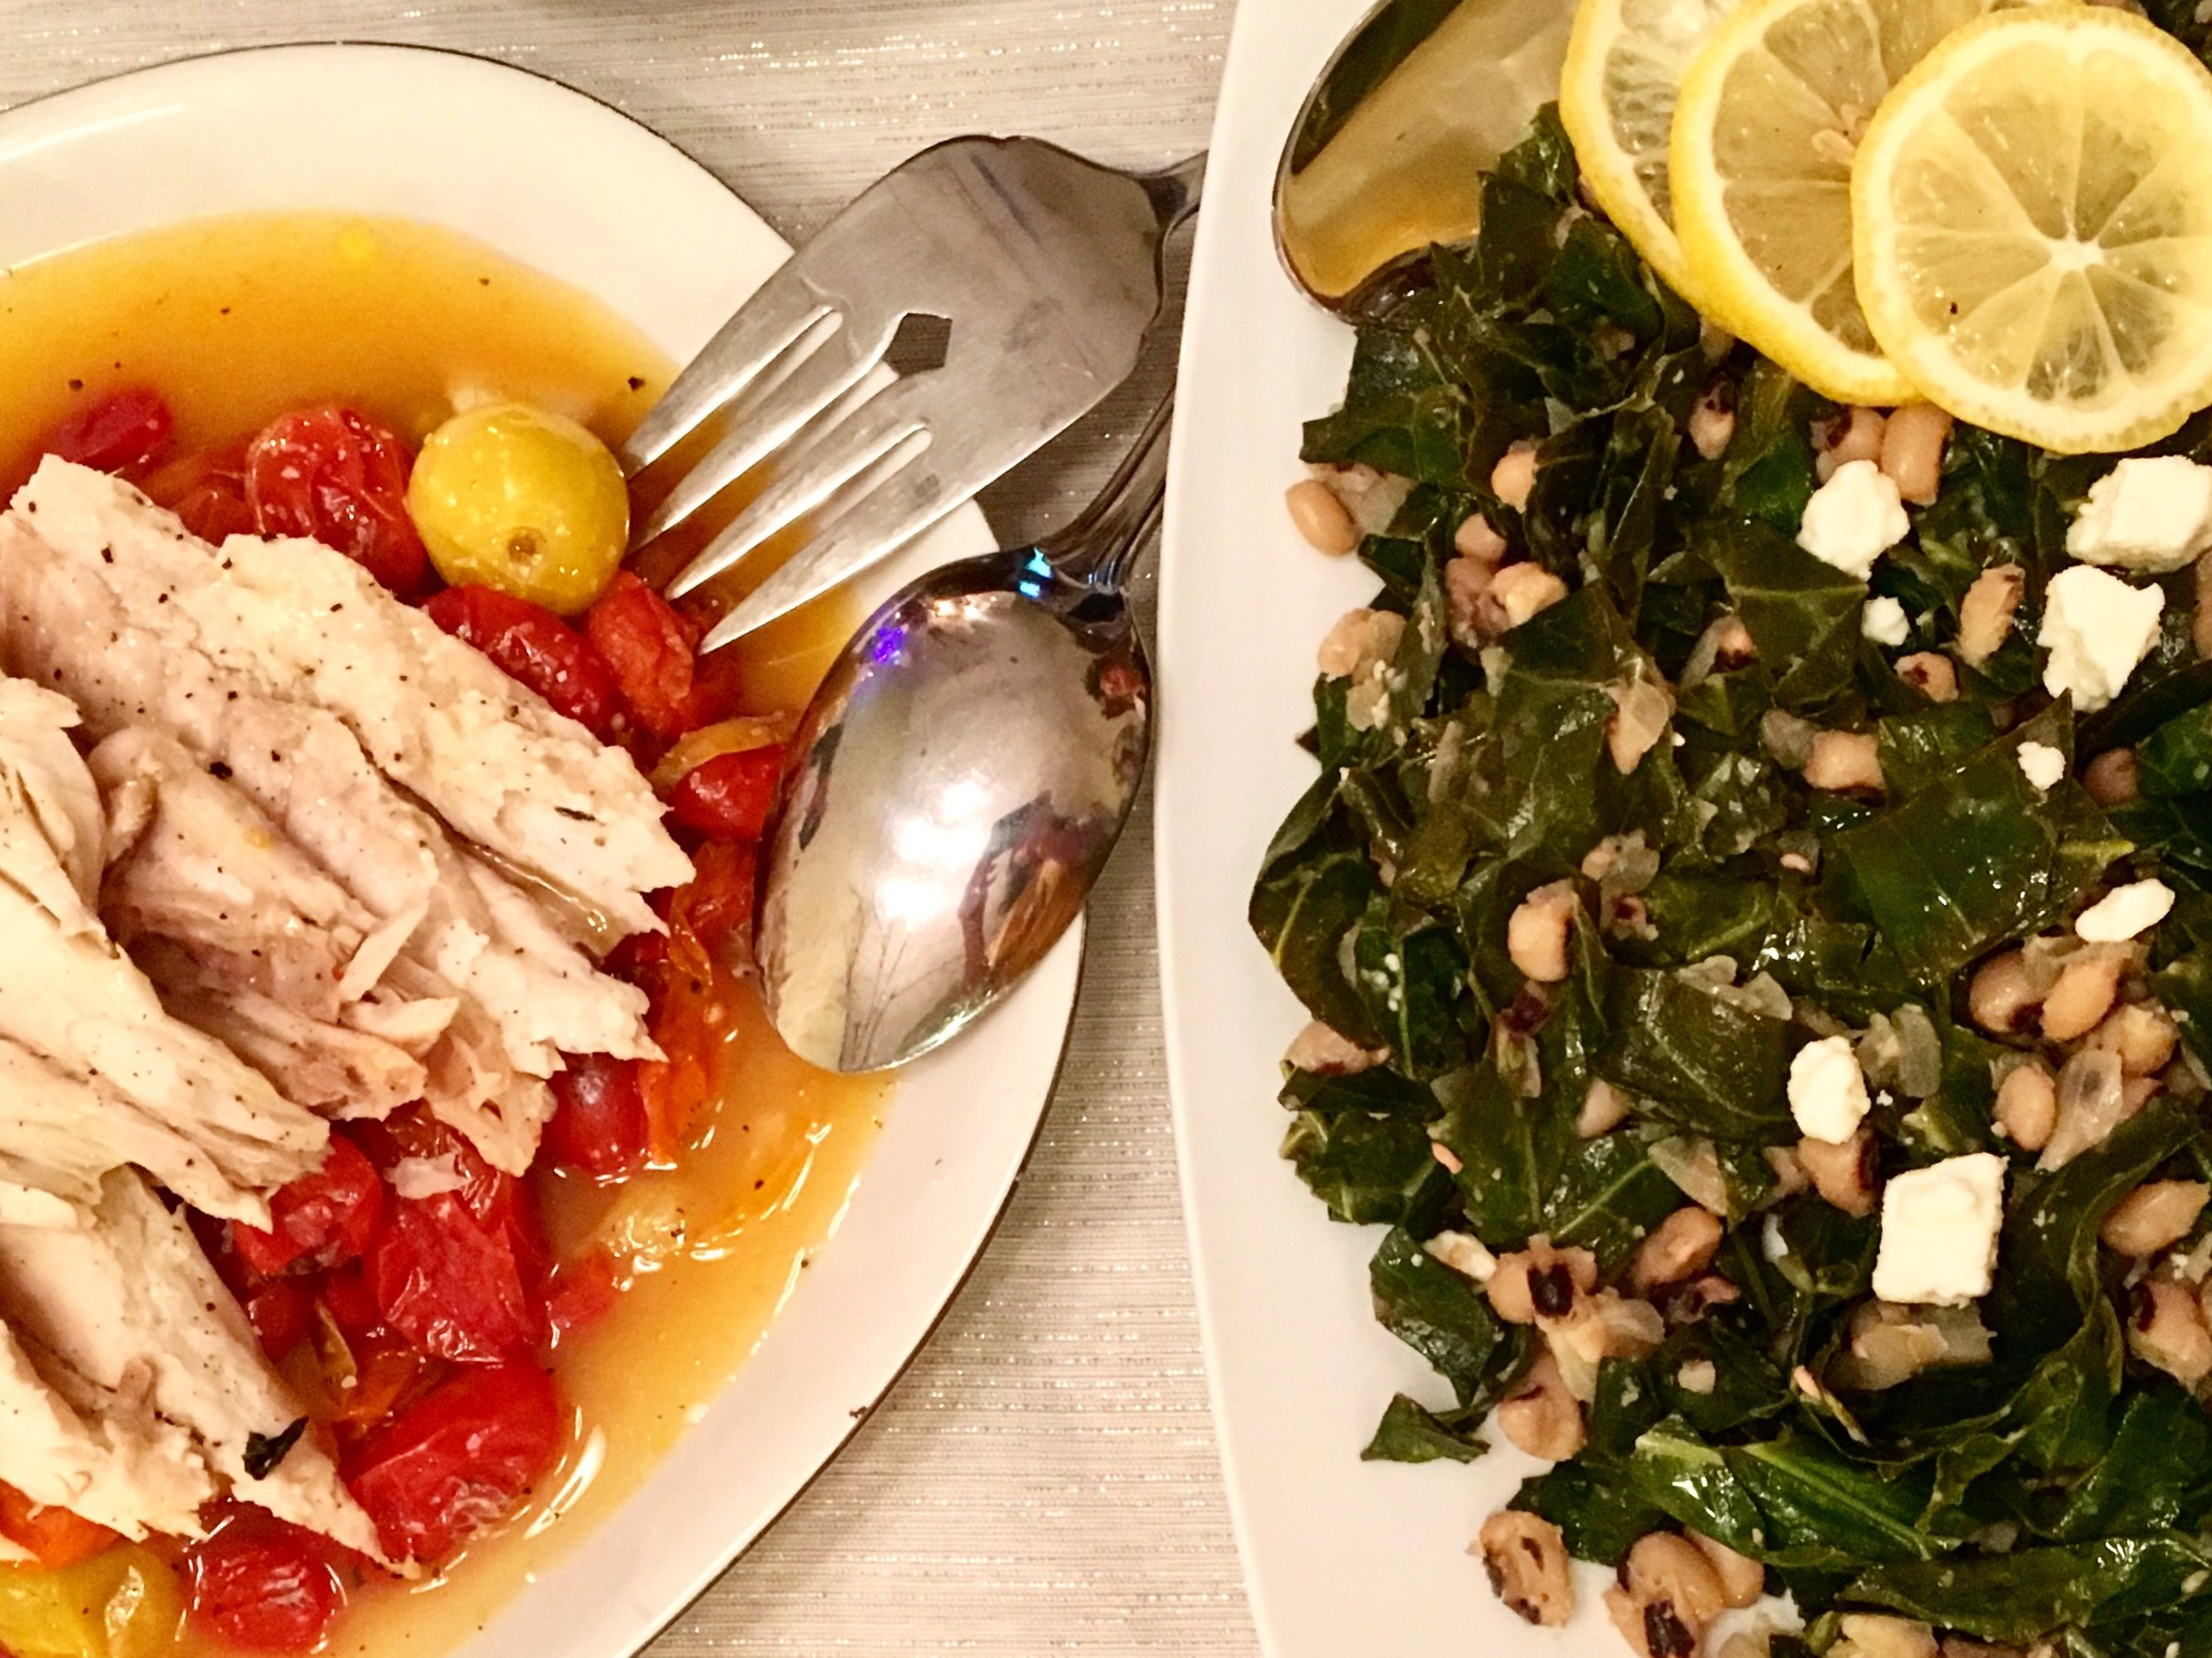 Fish De-boned + Collards In Wine/Butter/Lemon Sauce w/ Feta